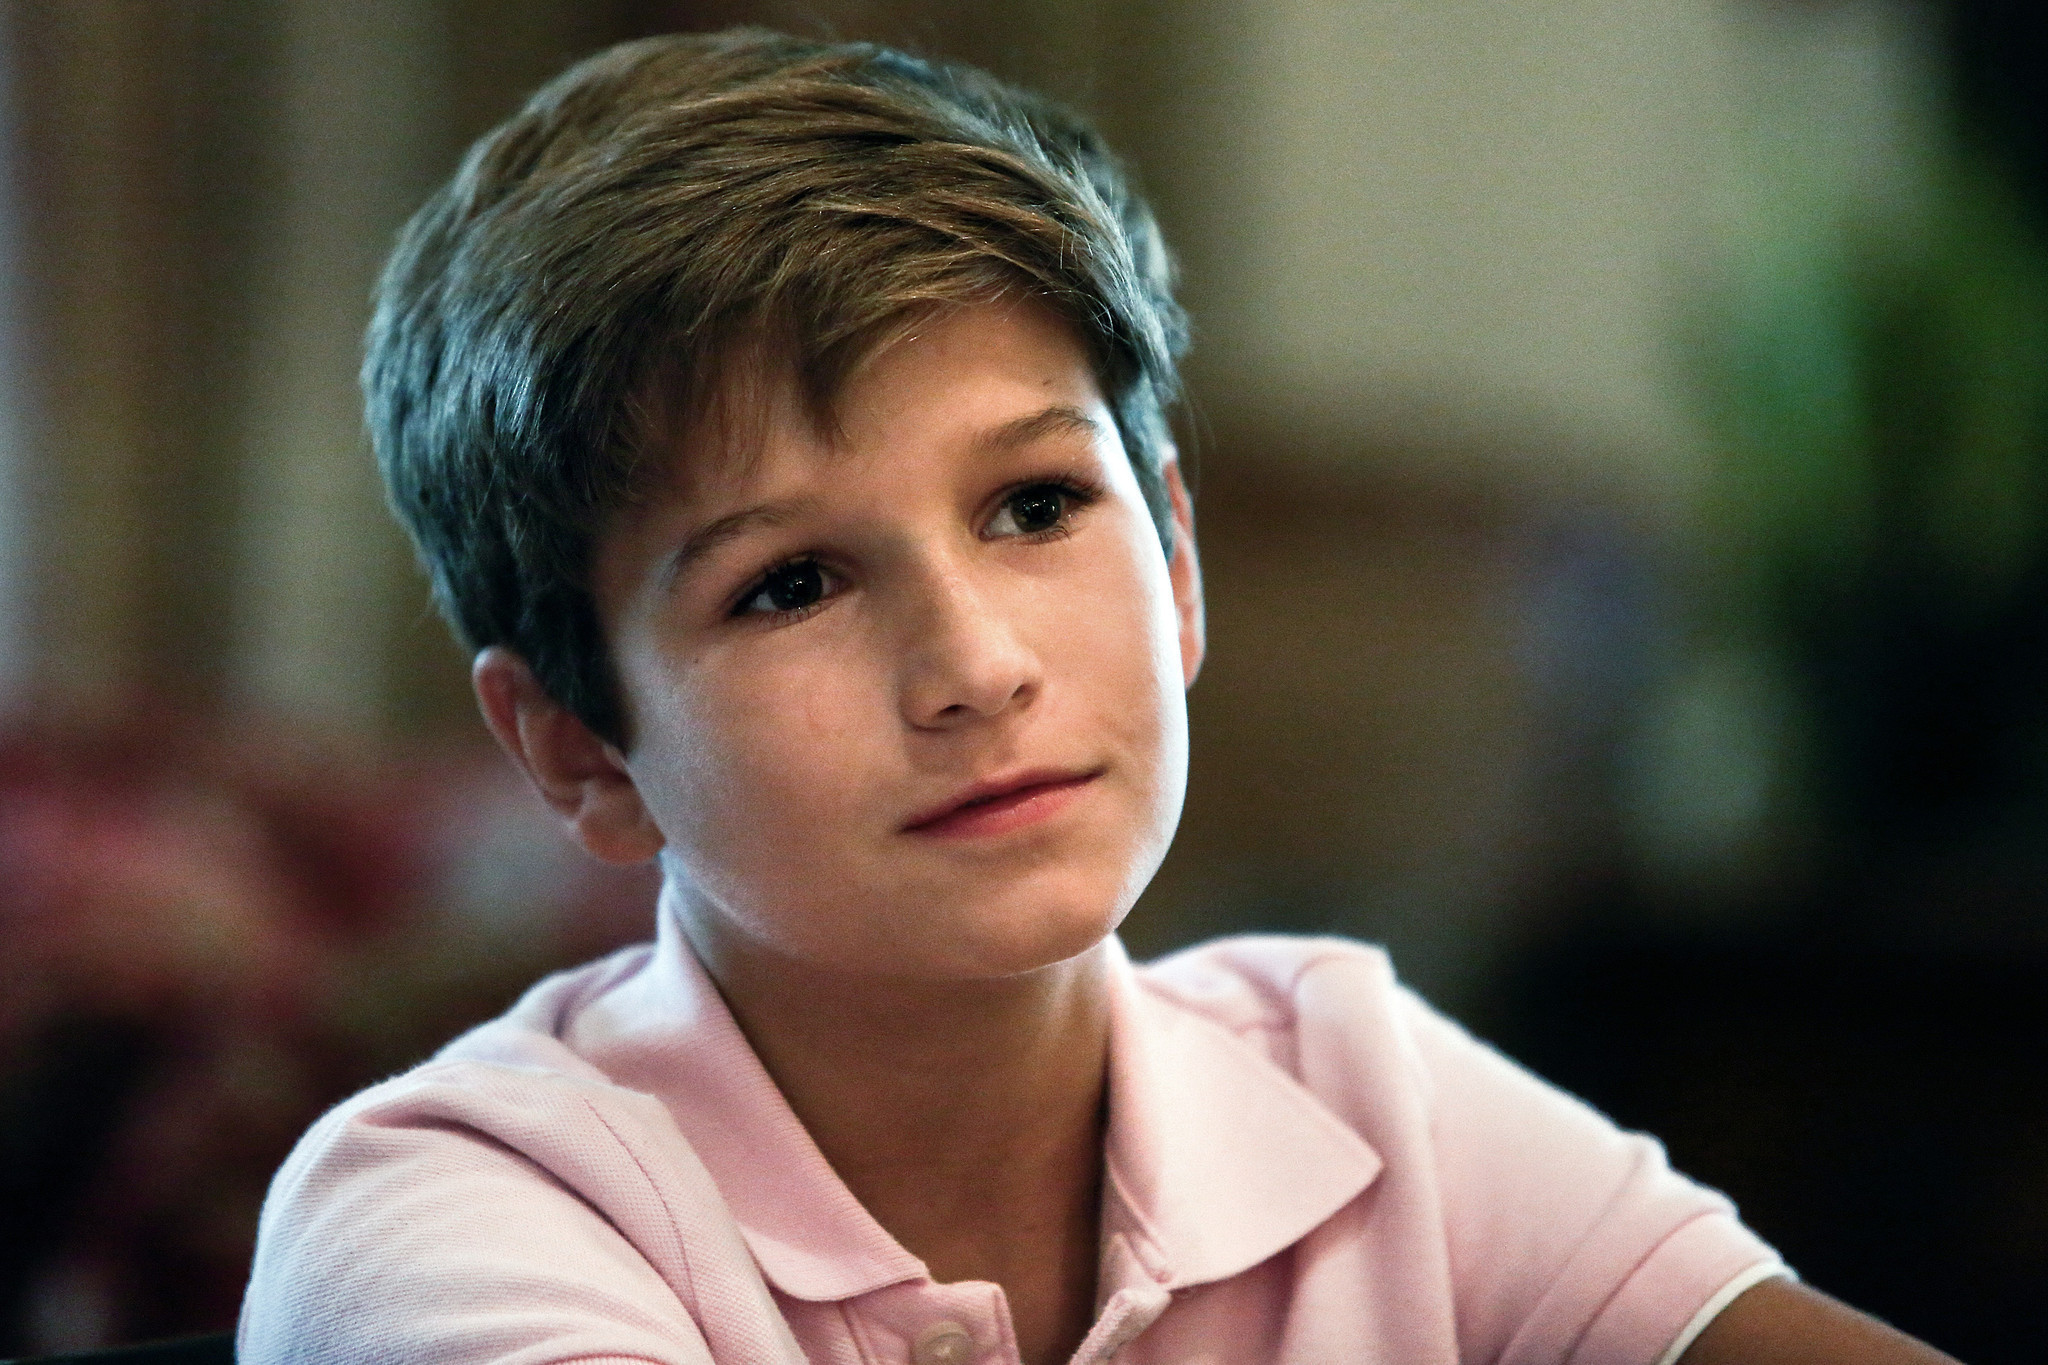 Child actor making mark as young Walt Disney in new film ... Young Boy Actors On Disney